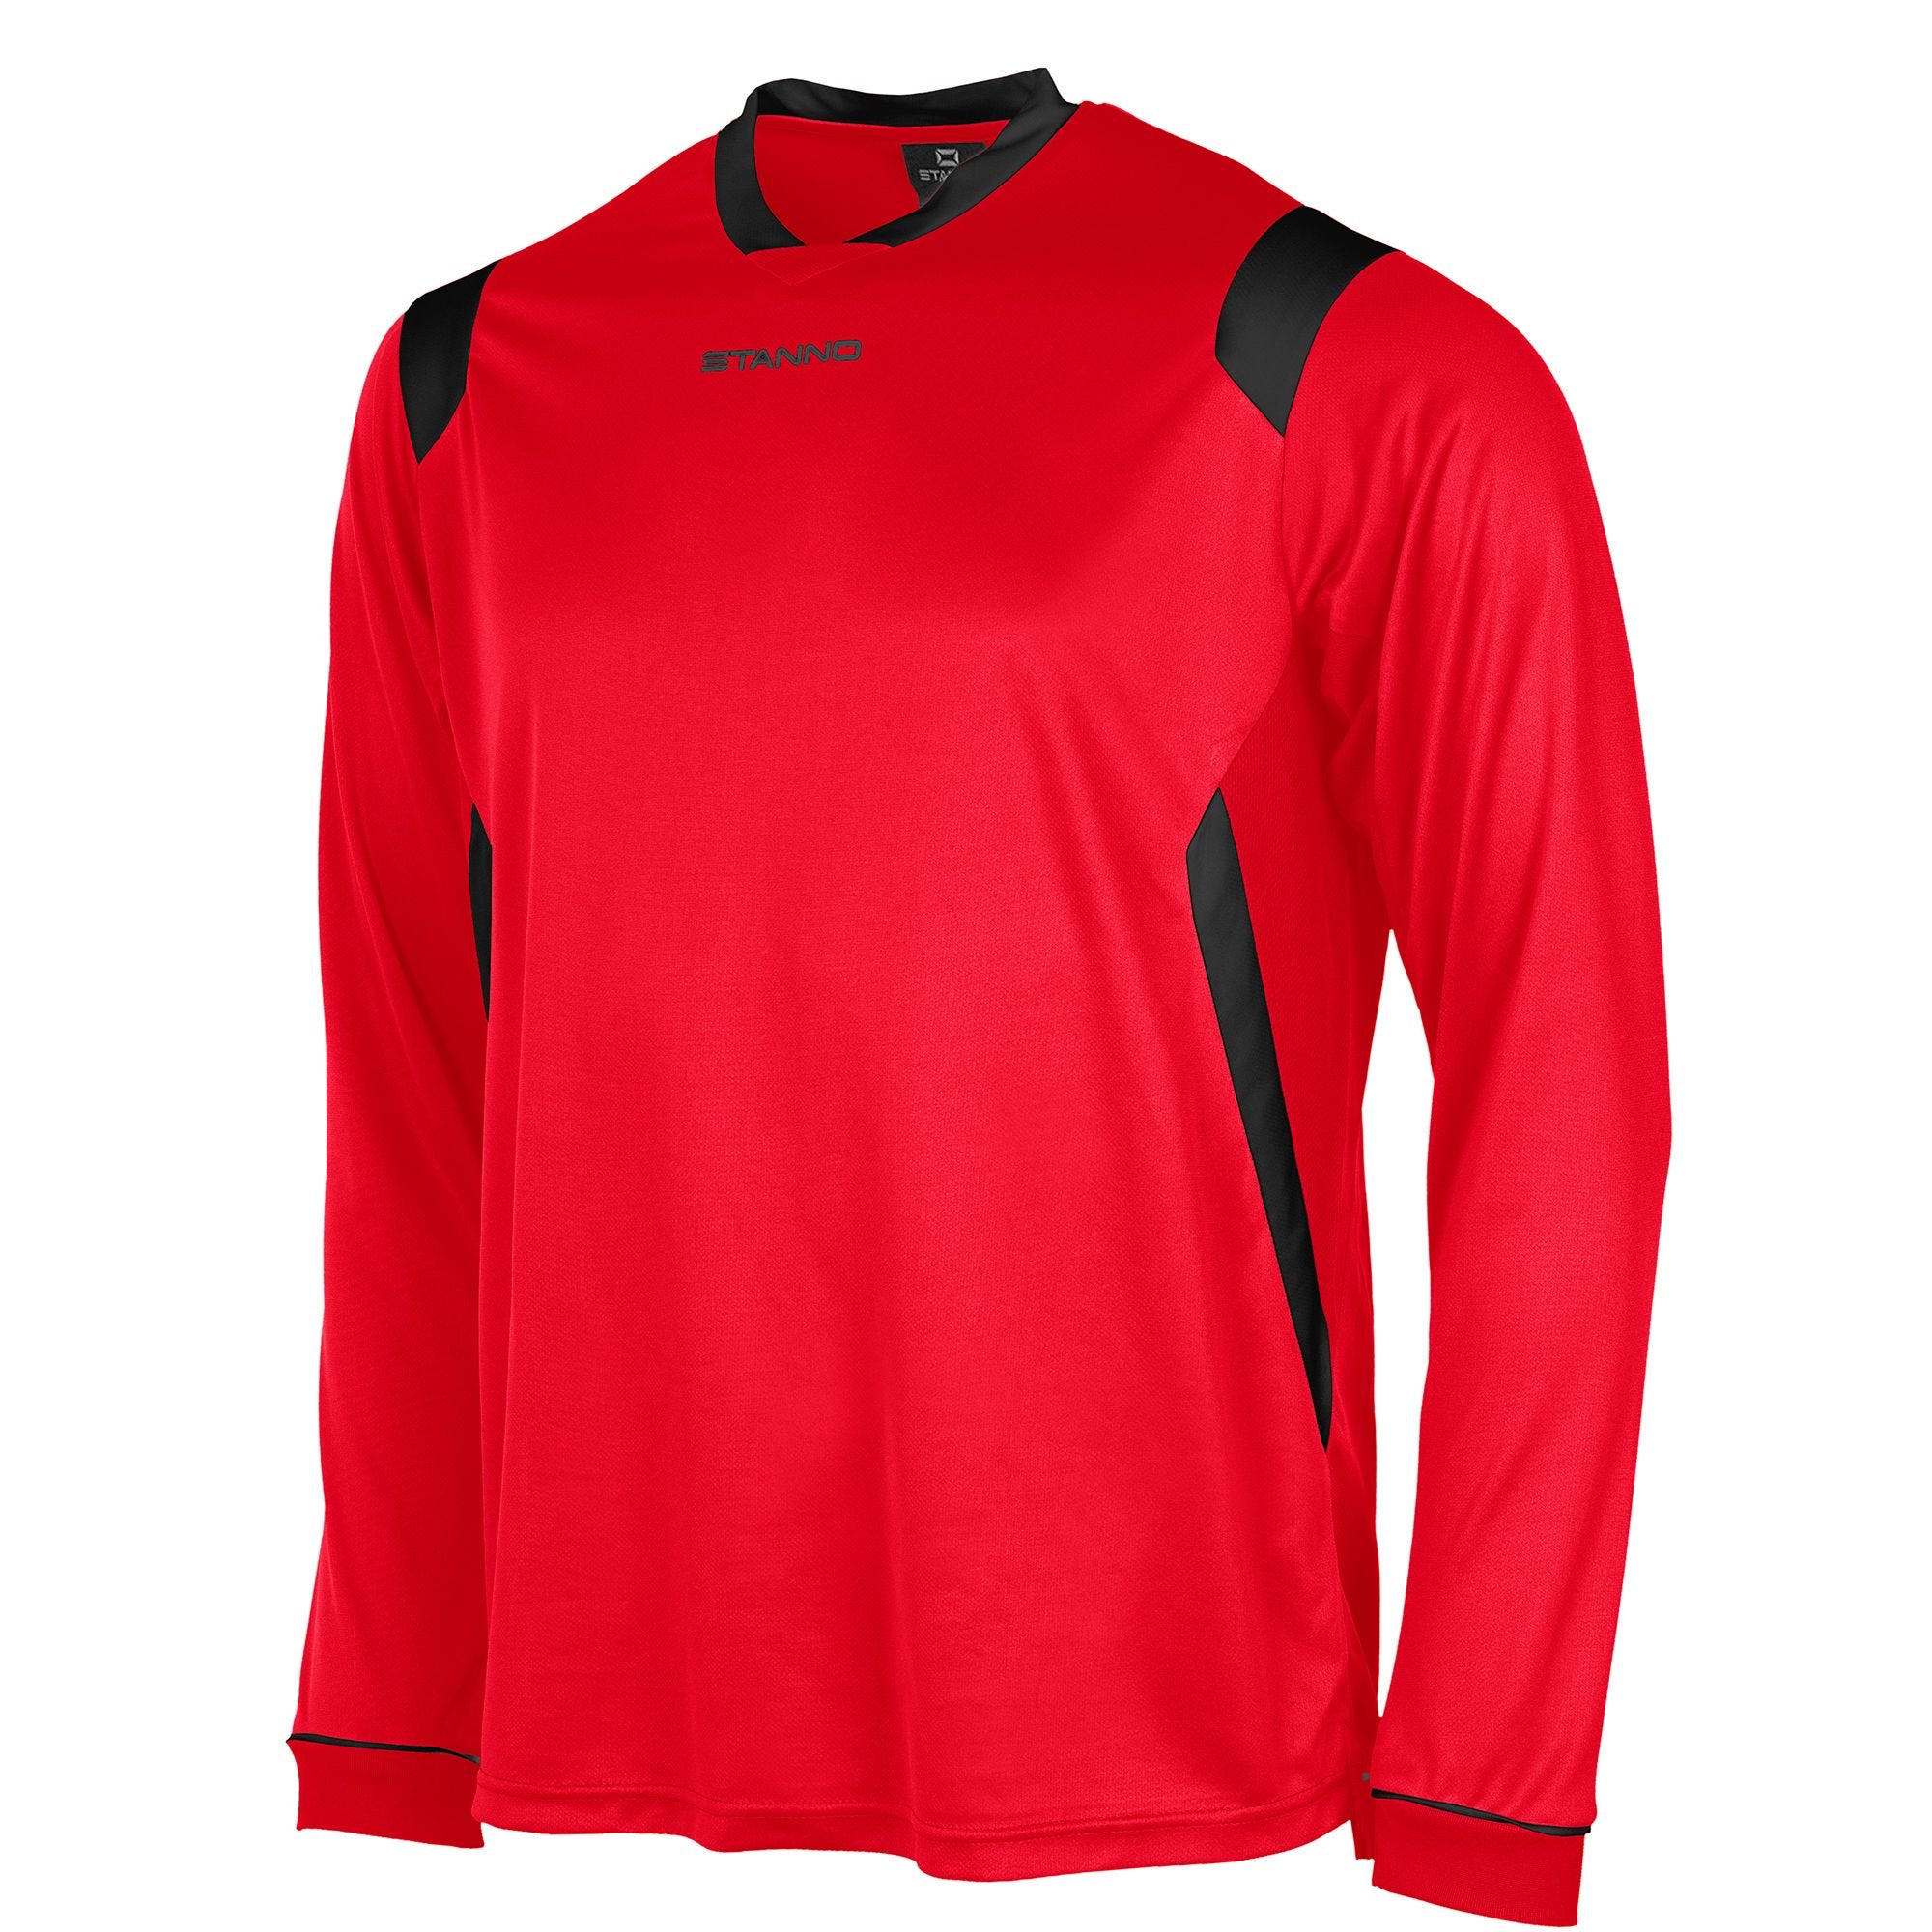 Stanno Arezzo long sleeved shirt in red with black contrast collar, and stripe detail on shoulders and sides.